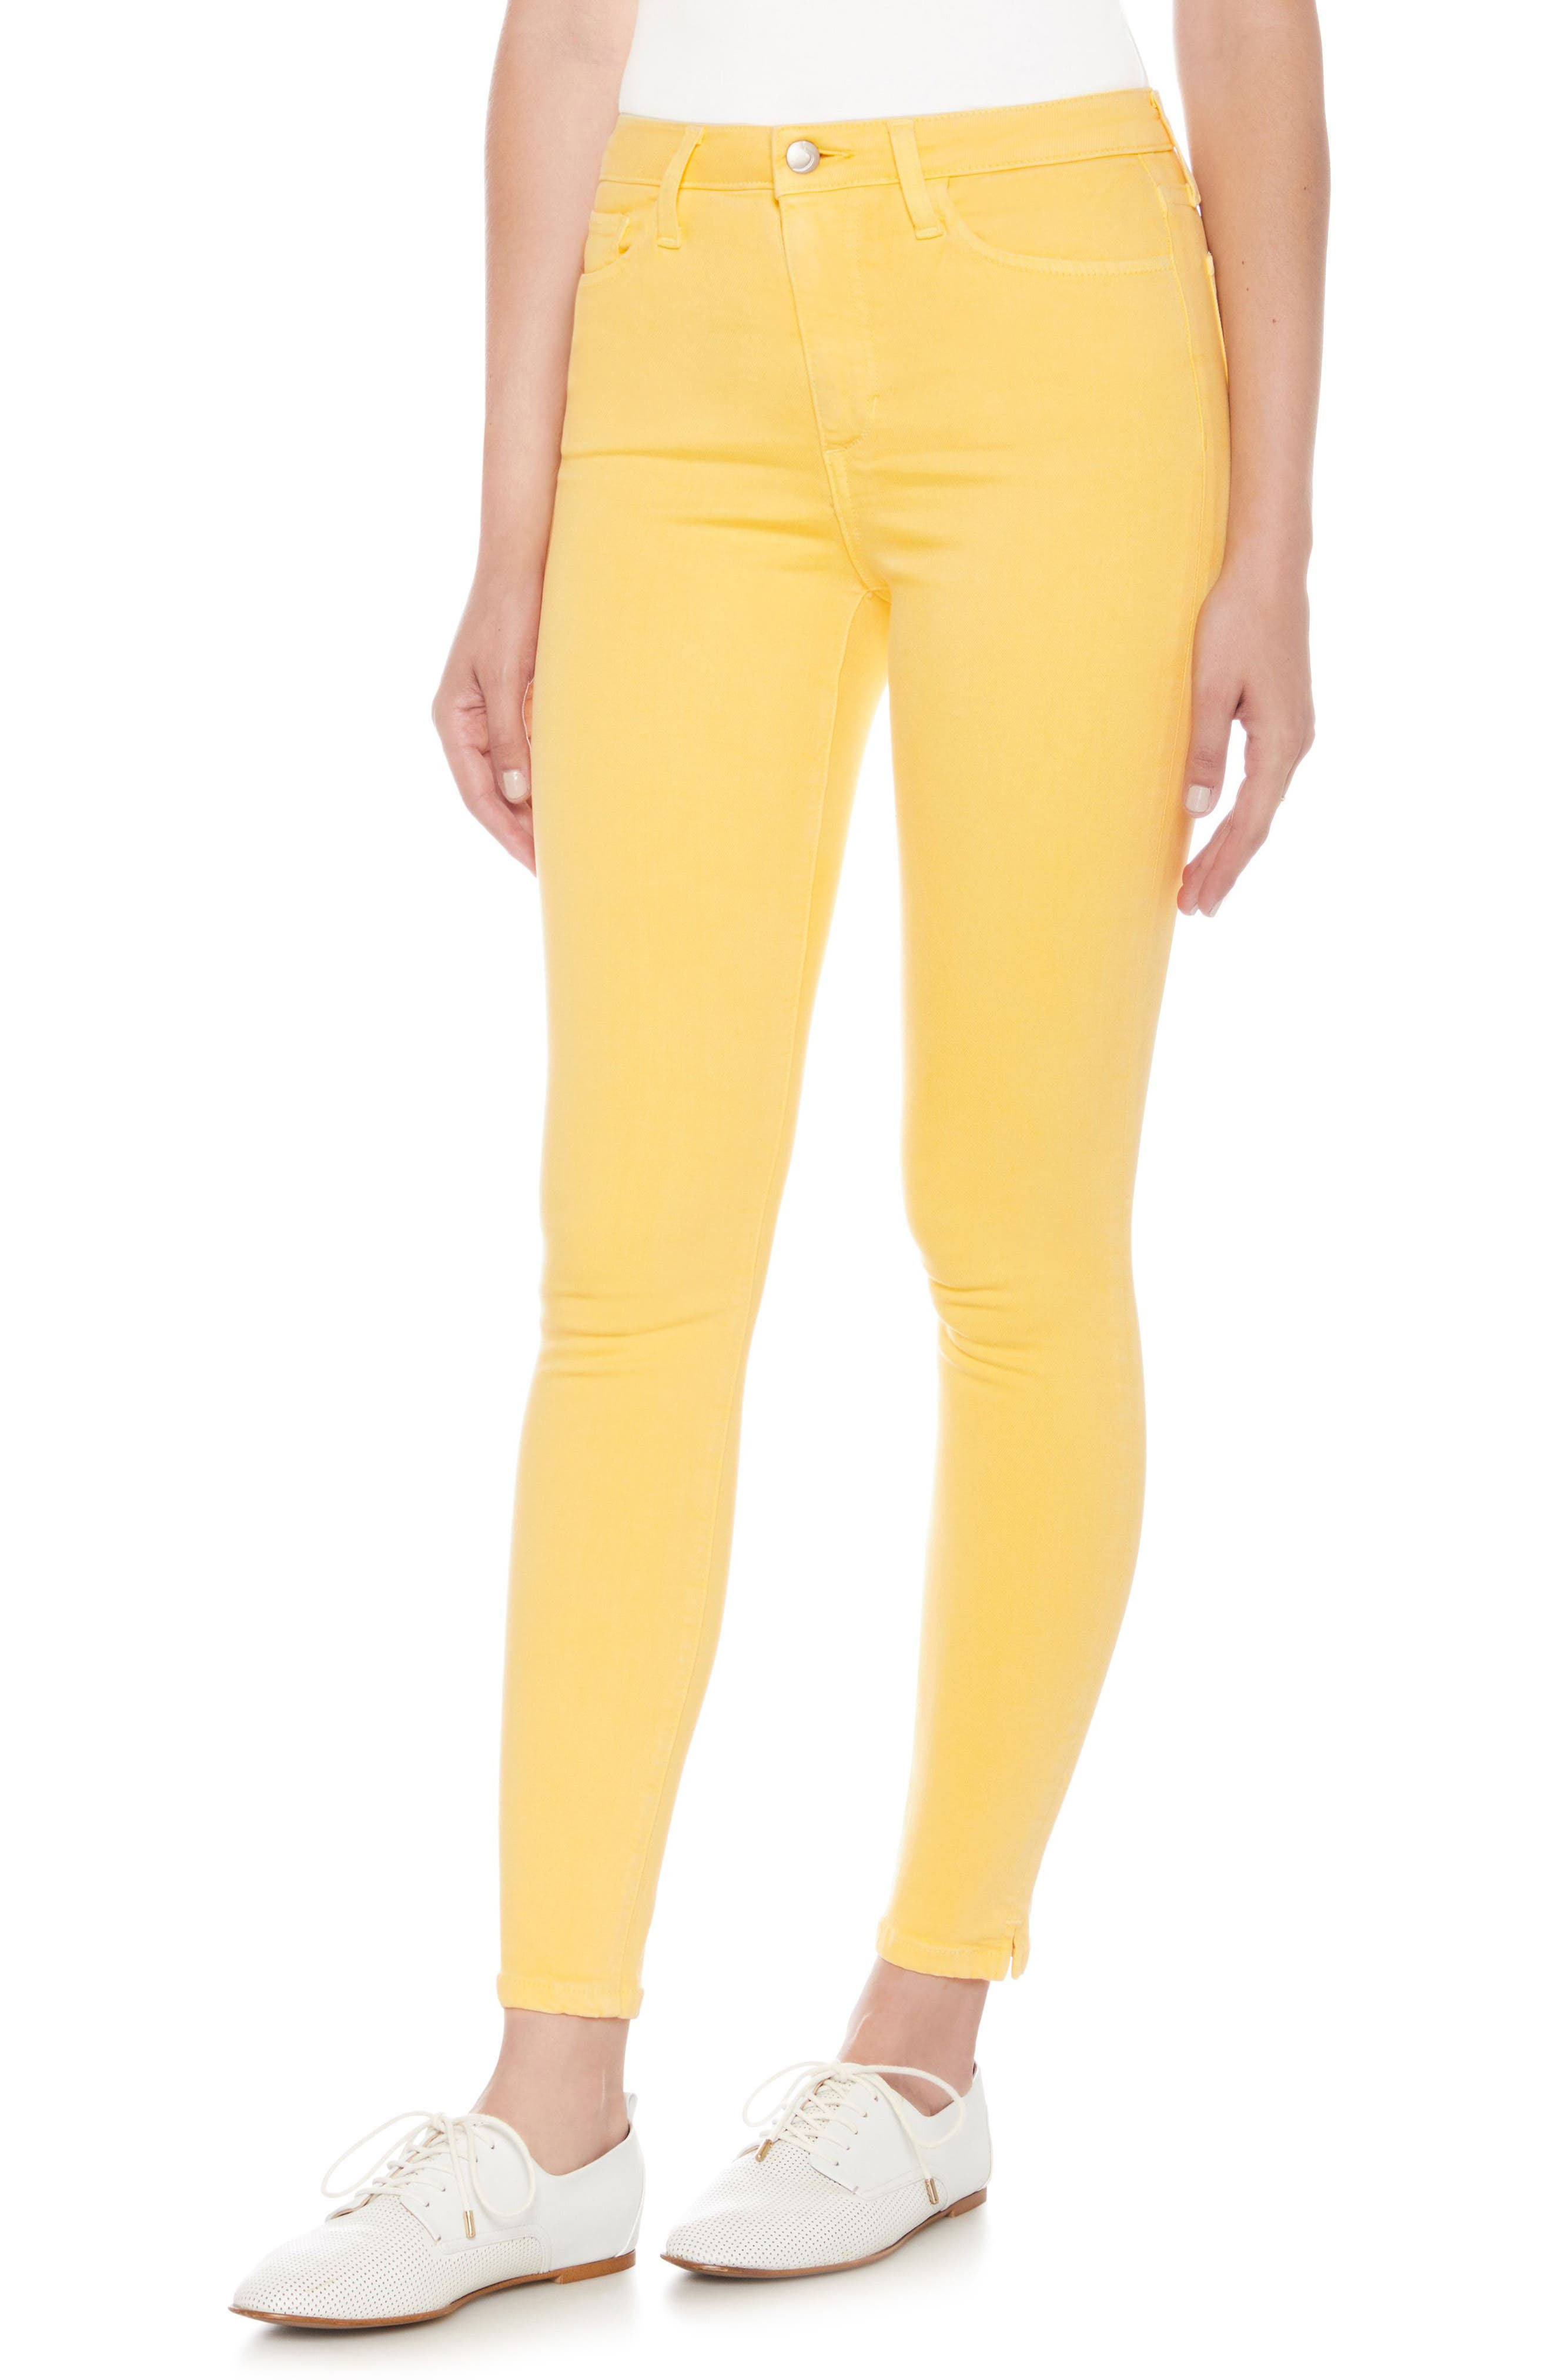 Charlie High Waist Ankle Skinny Jeans,                         Main,                         color, Pale Marigold